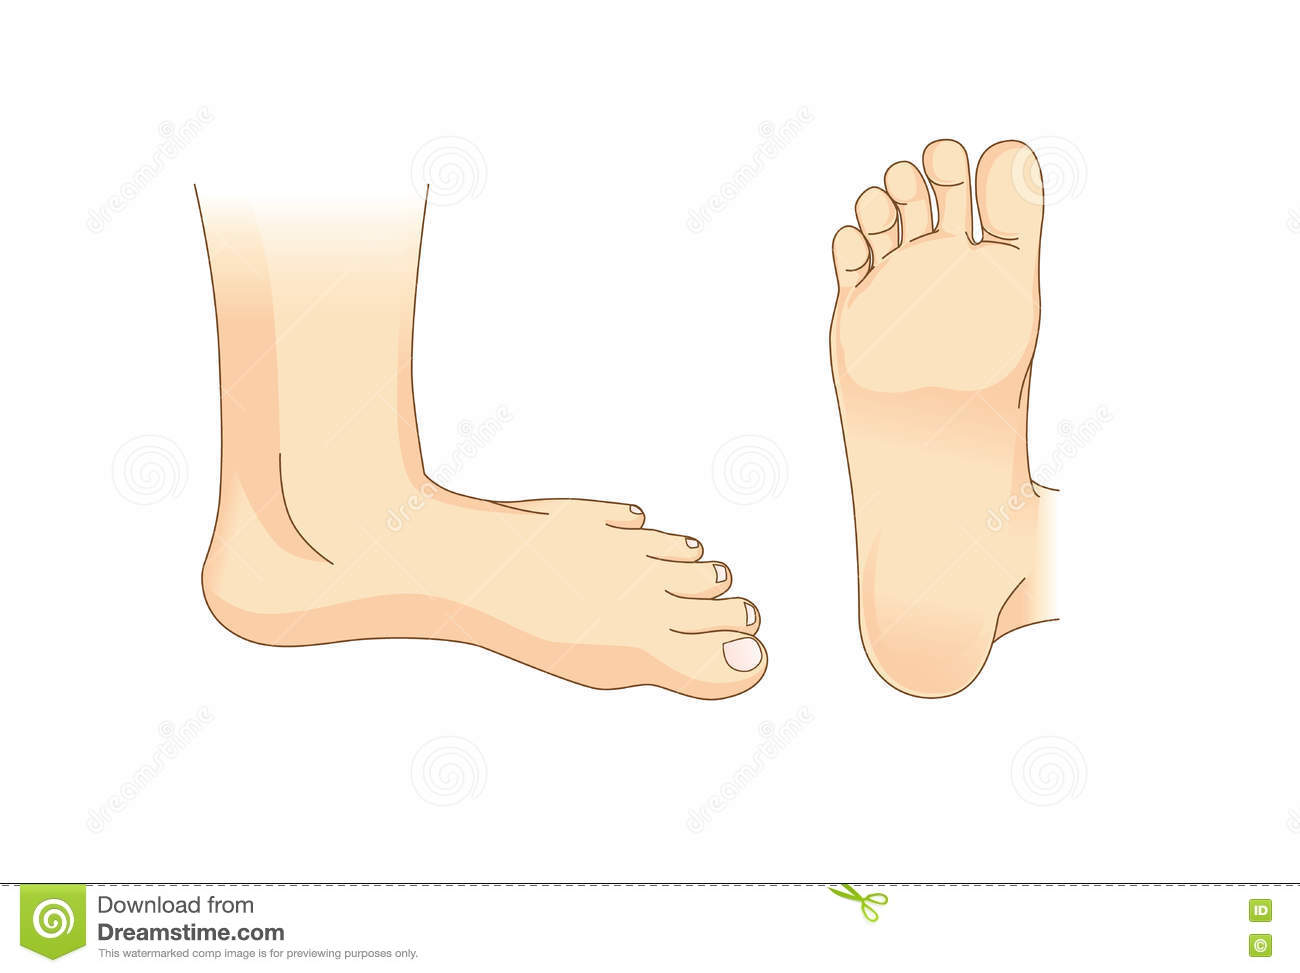 hight resolution of foot vector in side view and bottom of foot illustration about foot care